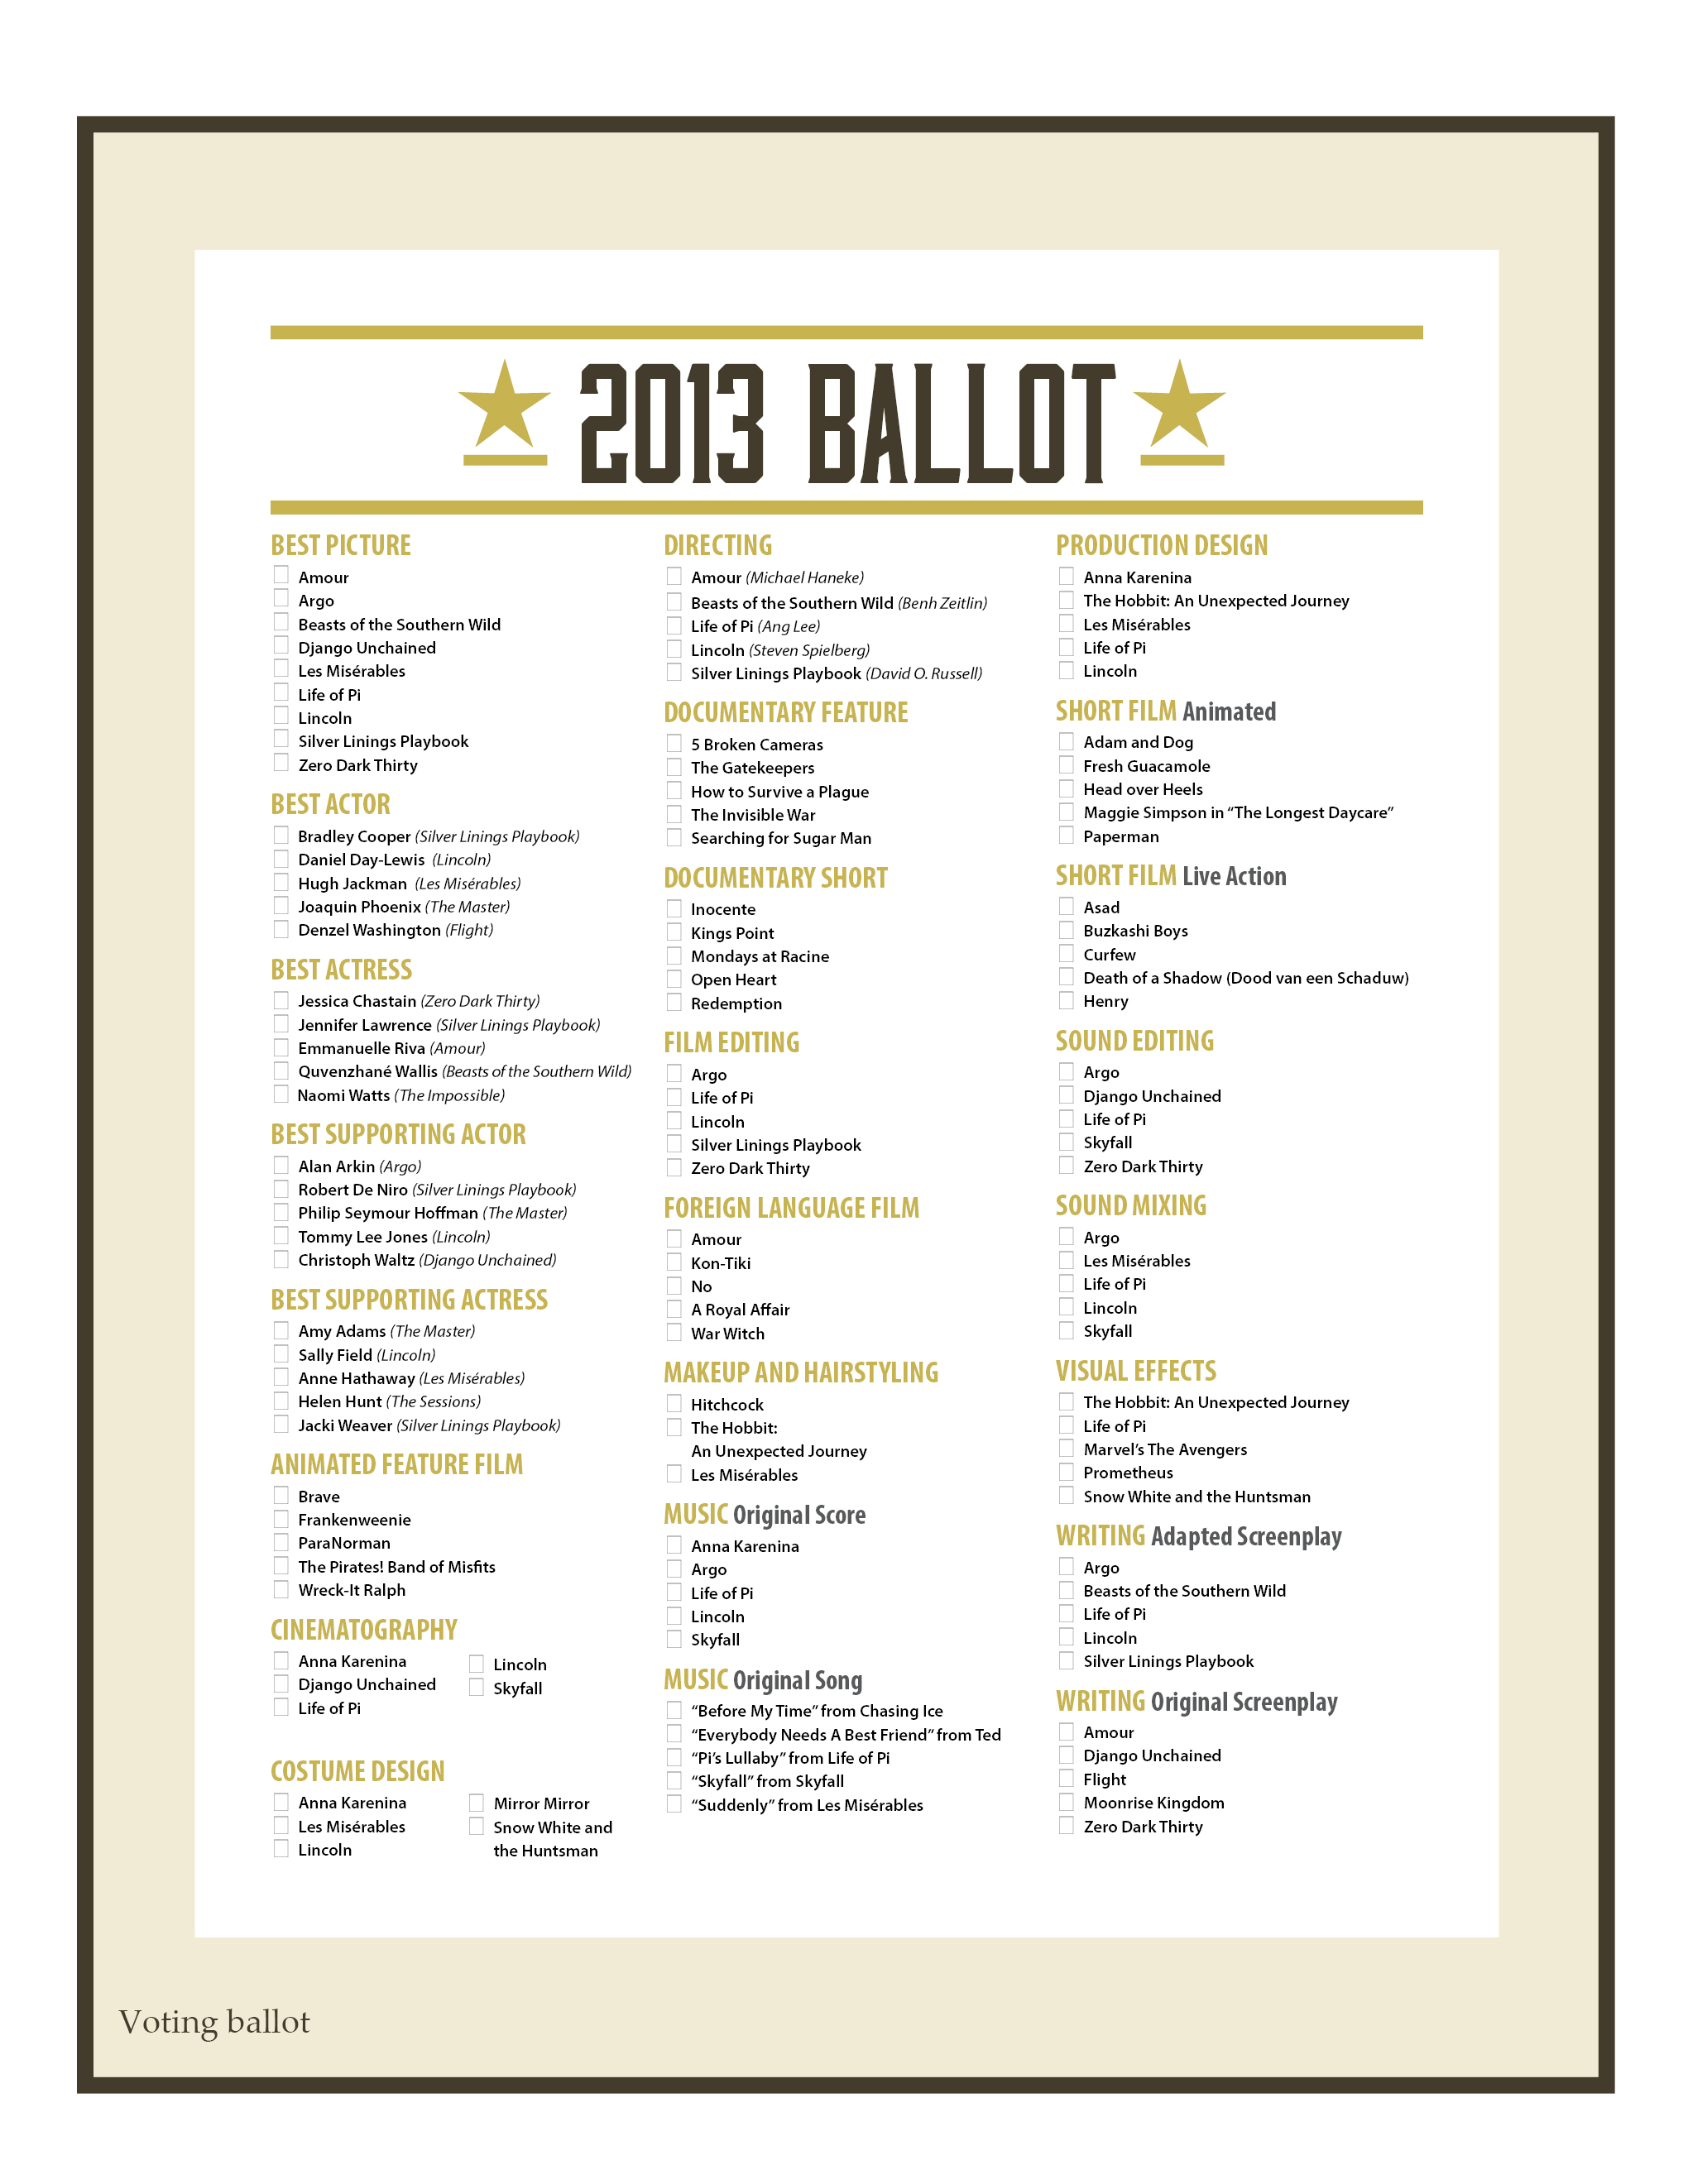 Oscar Official Ballot besides 1 additionally Oscars Banquet 2014 further Printable Oscar Ballot as well 89th Academy Awards. on oscar nominations invitations